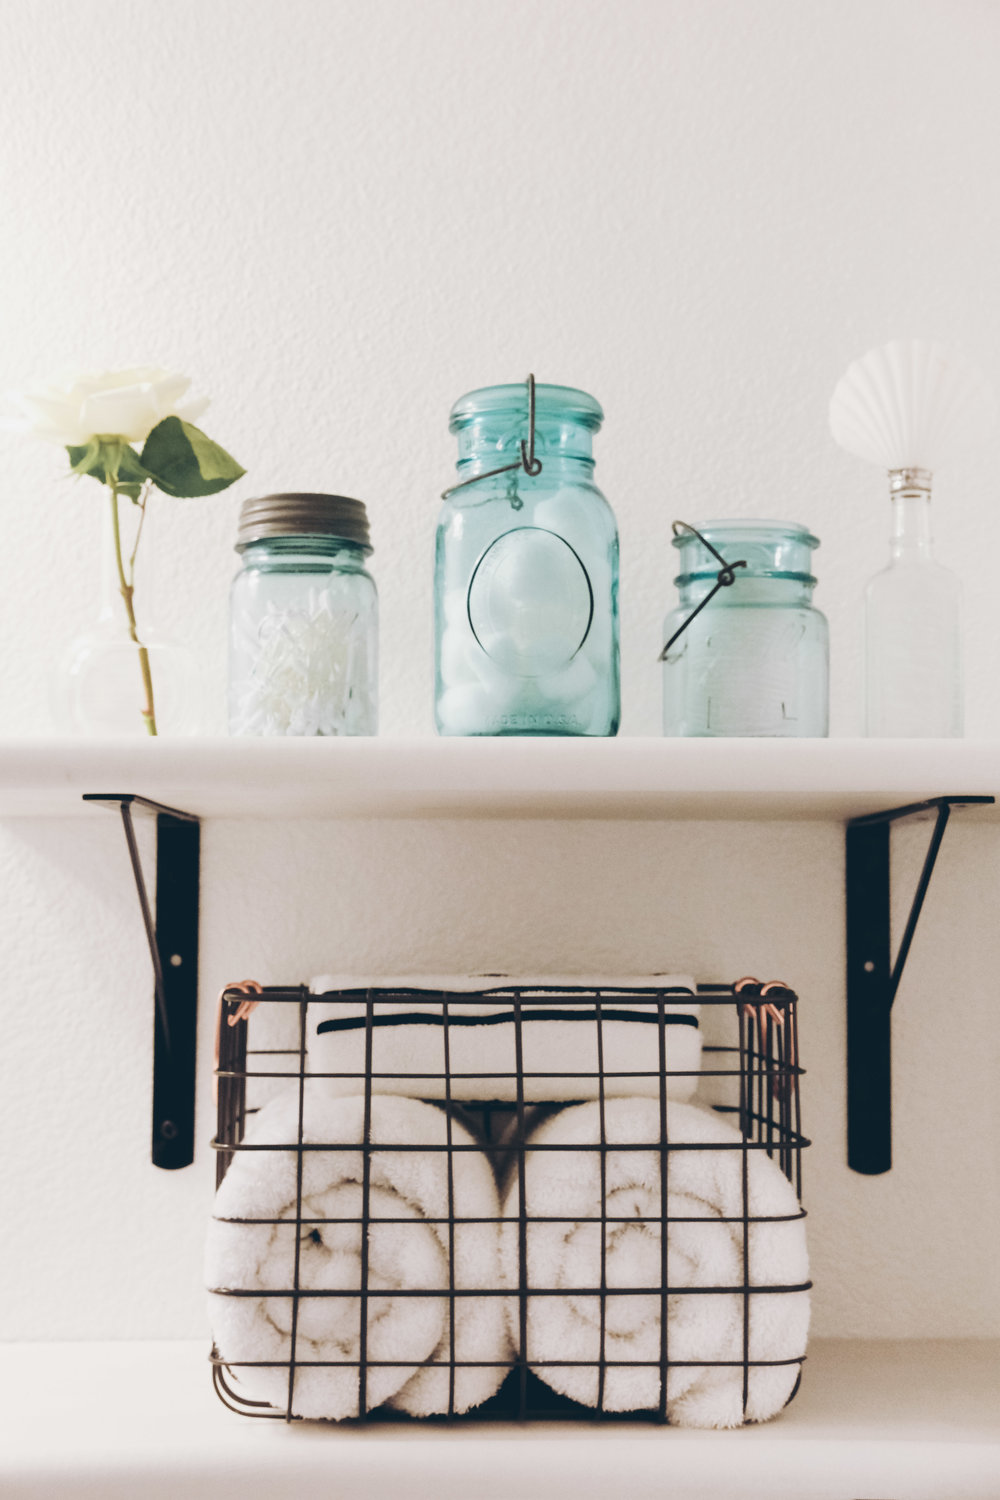 DIY bathroom shelves_black brackets with white wood shelves_guest bathroom makeover_black and white bathroom_blue mason jars_01.jpg